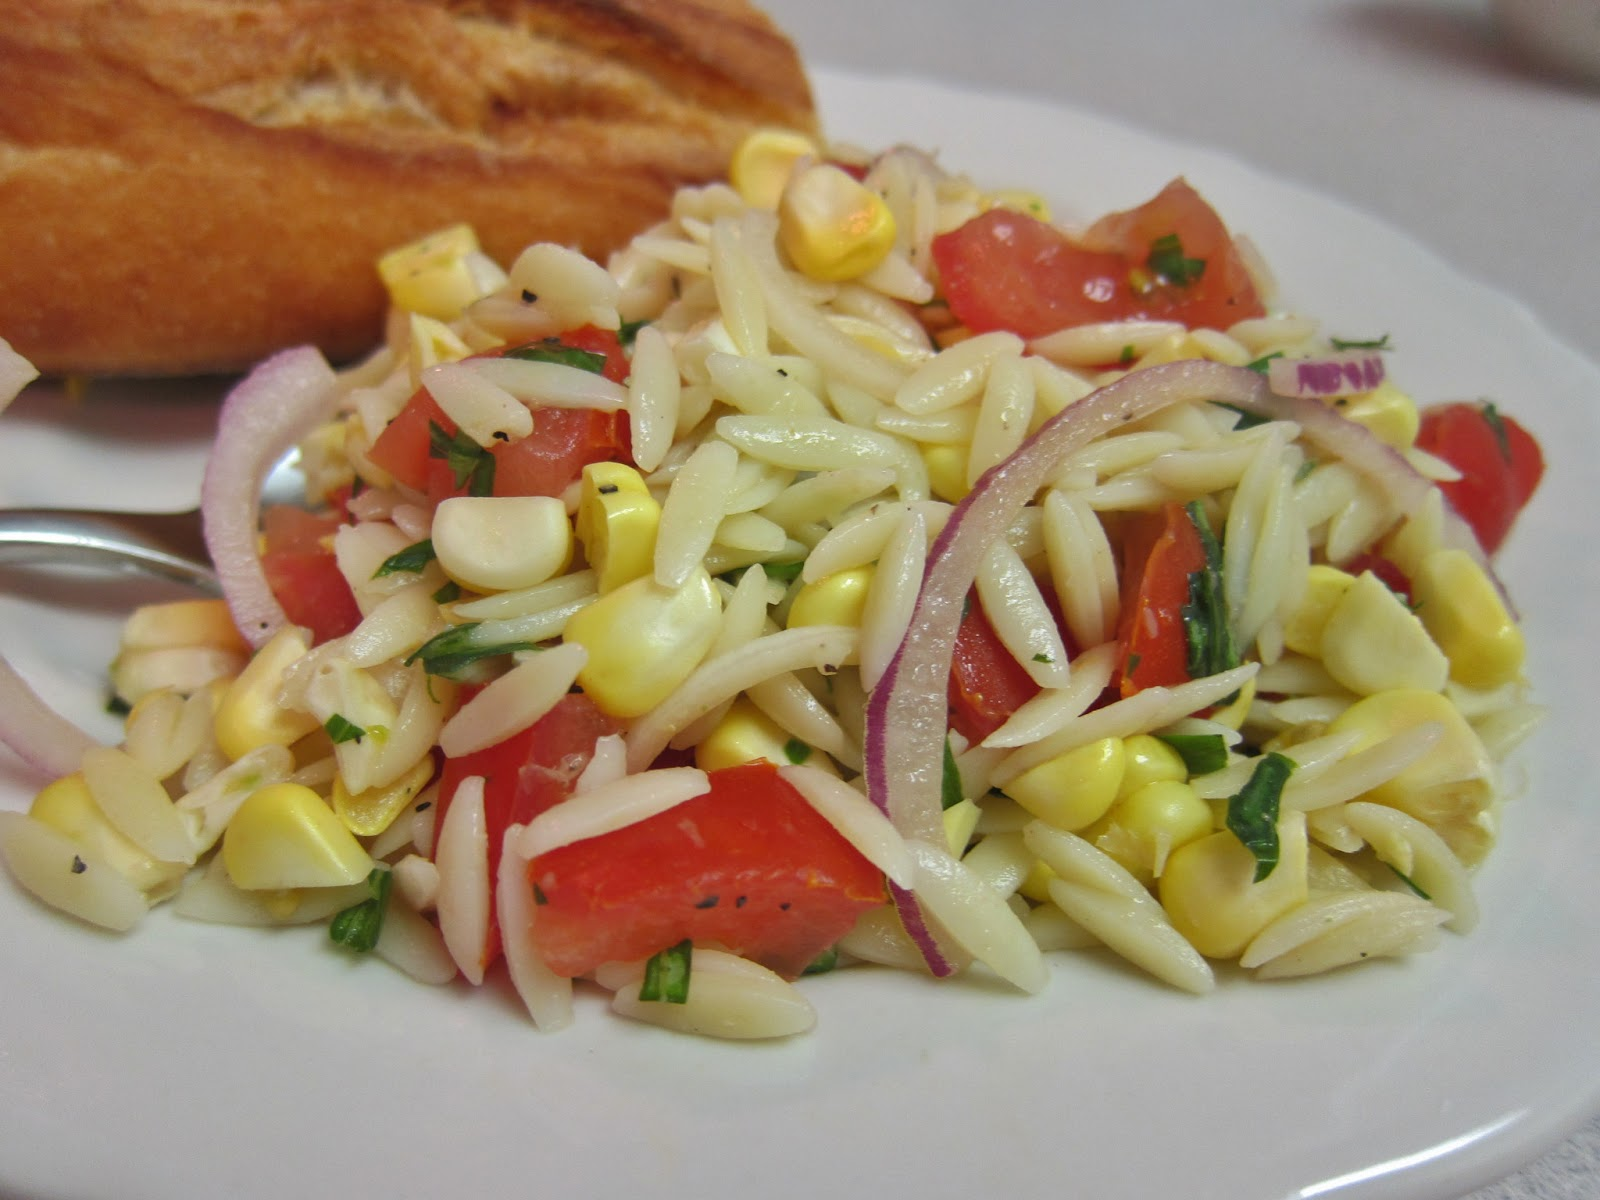 The Vegan Chronicle: Orzo Salad with Corn, Tomatoes, and Basil